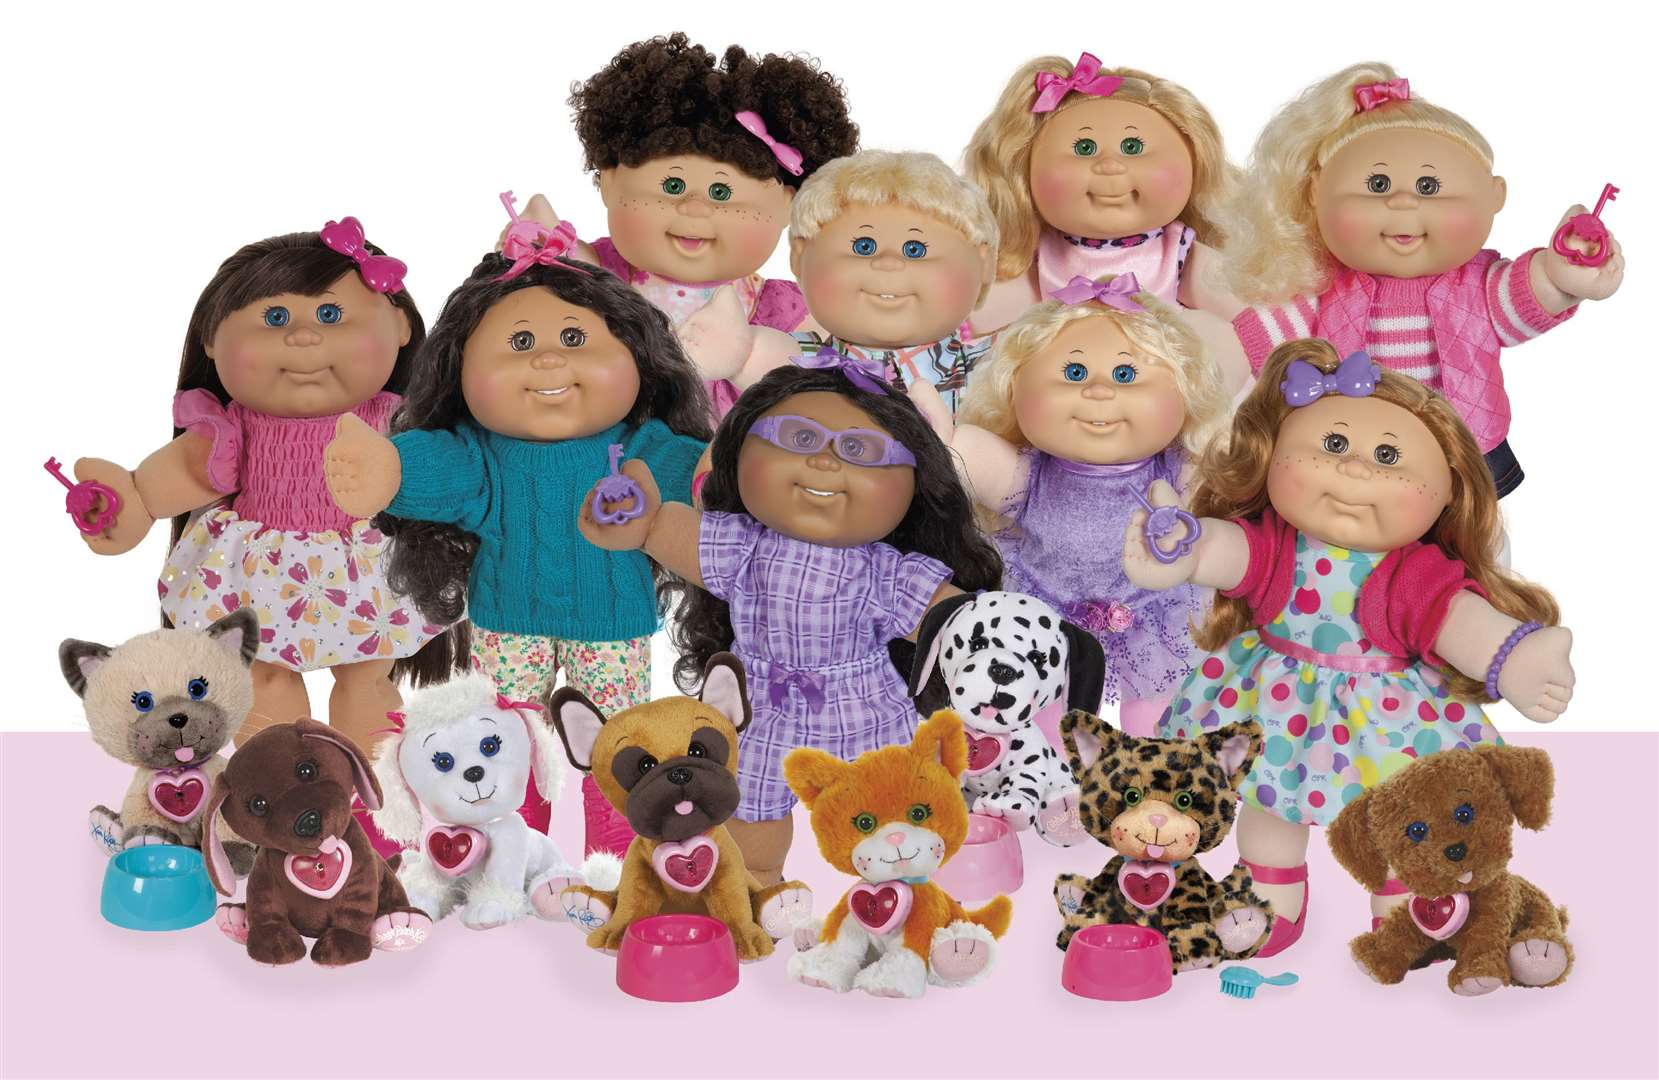 The 2019 collection of Cabbage Patch Kids based on the top toy from the eighties